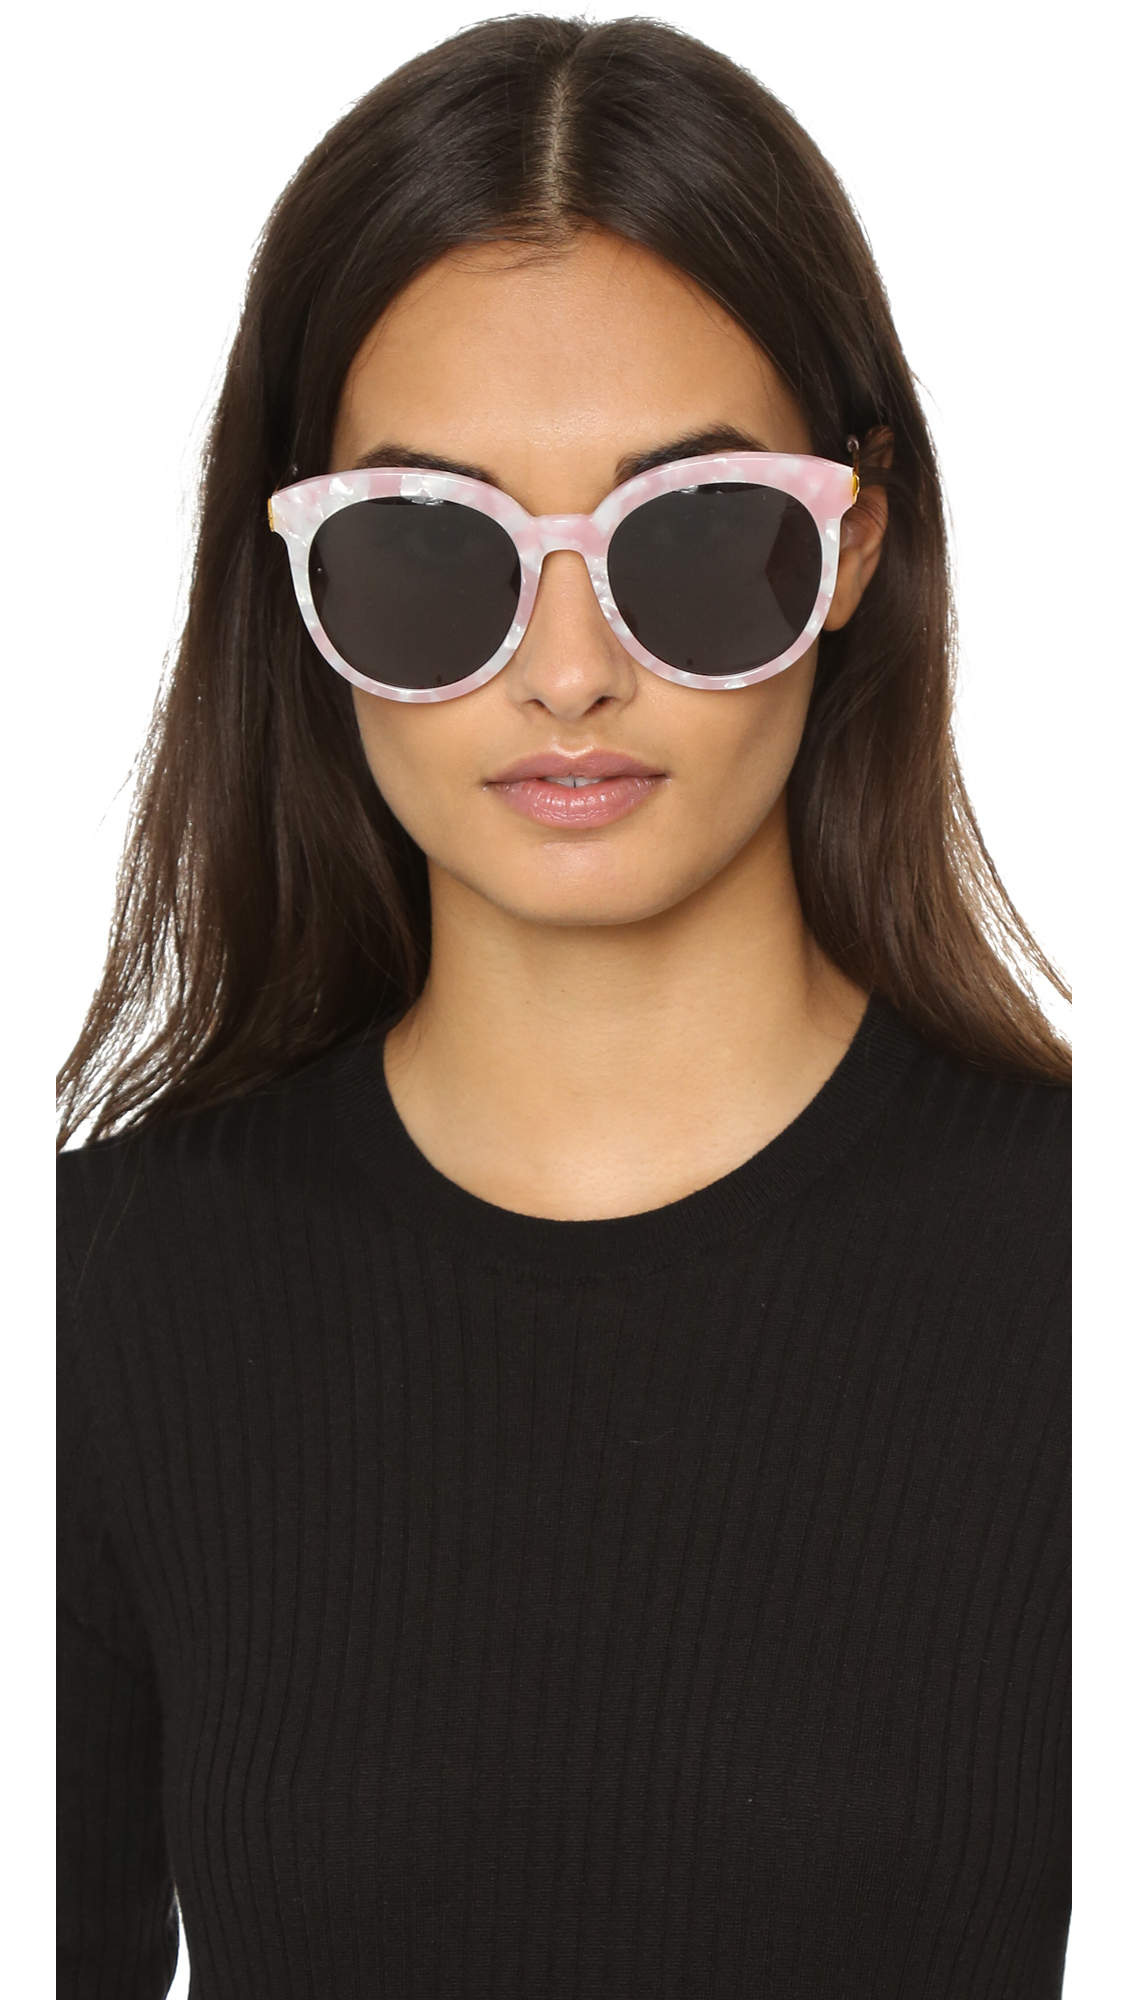 abbff46cd14 Lyst - Gentle Monster Lovesome Sunglasses - Pink Black in Pink